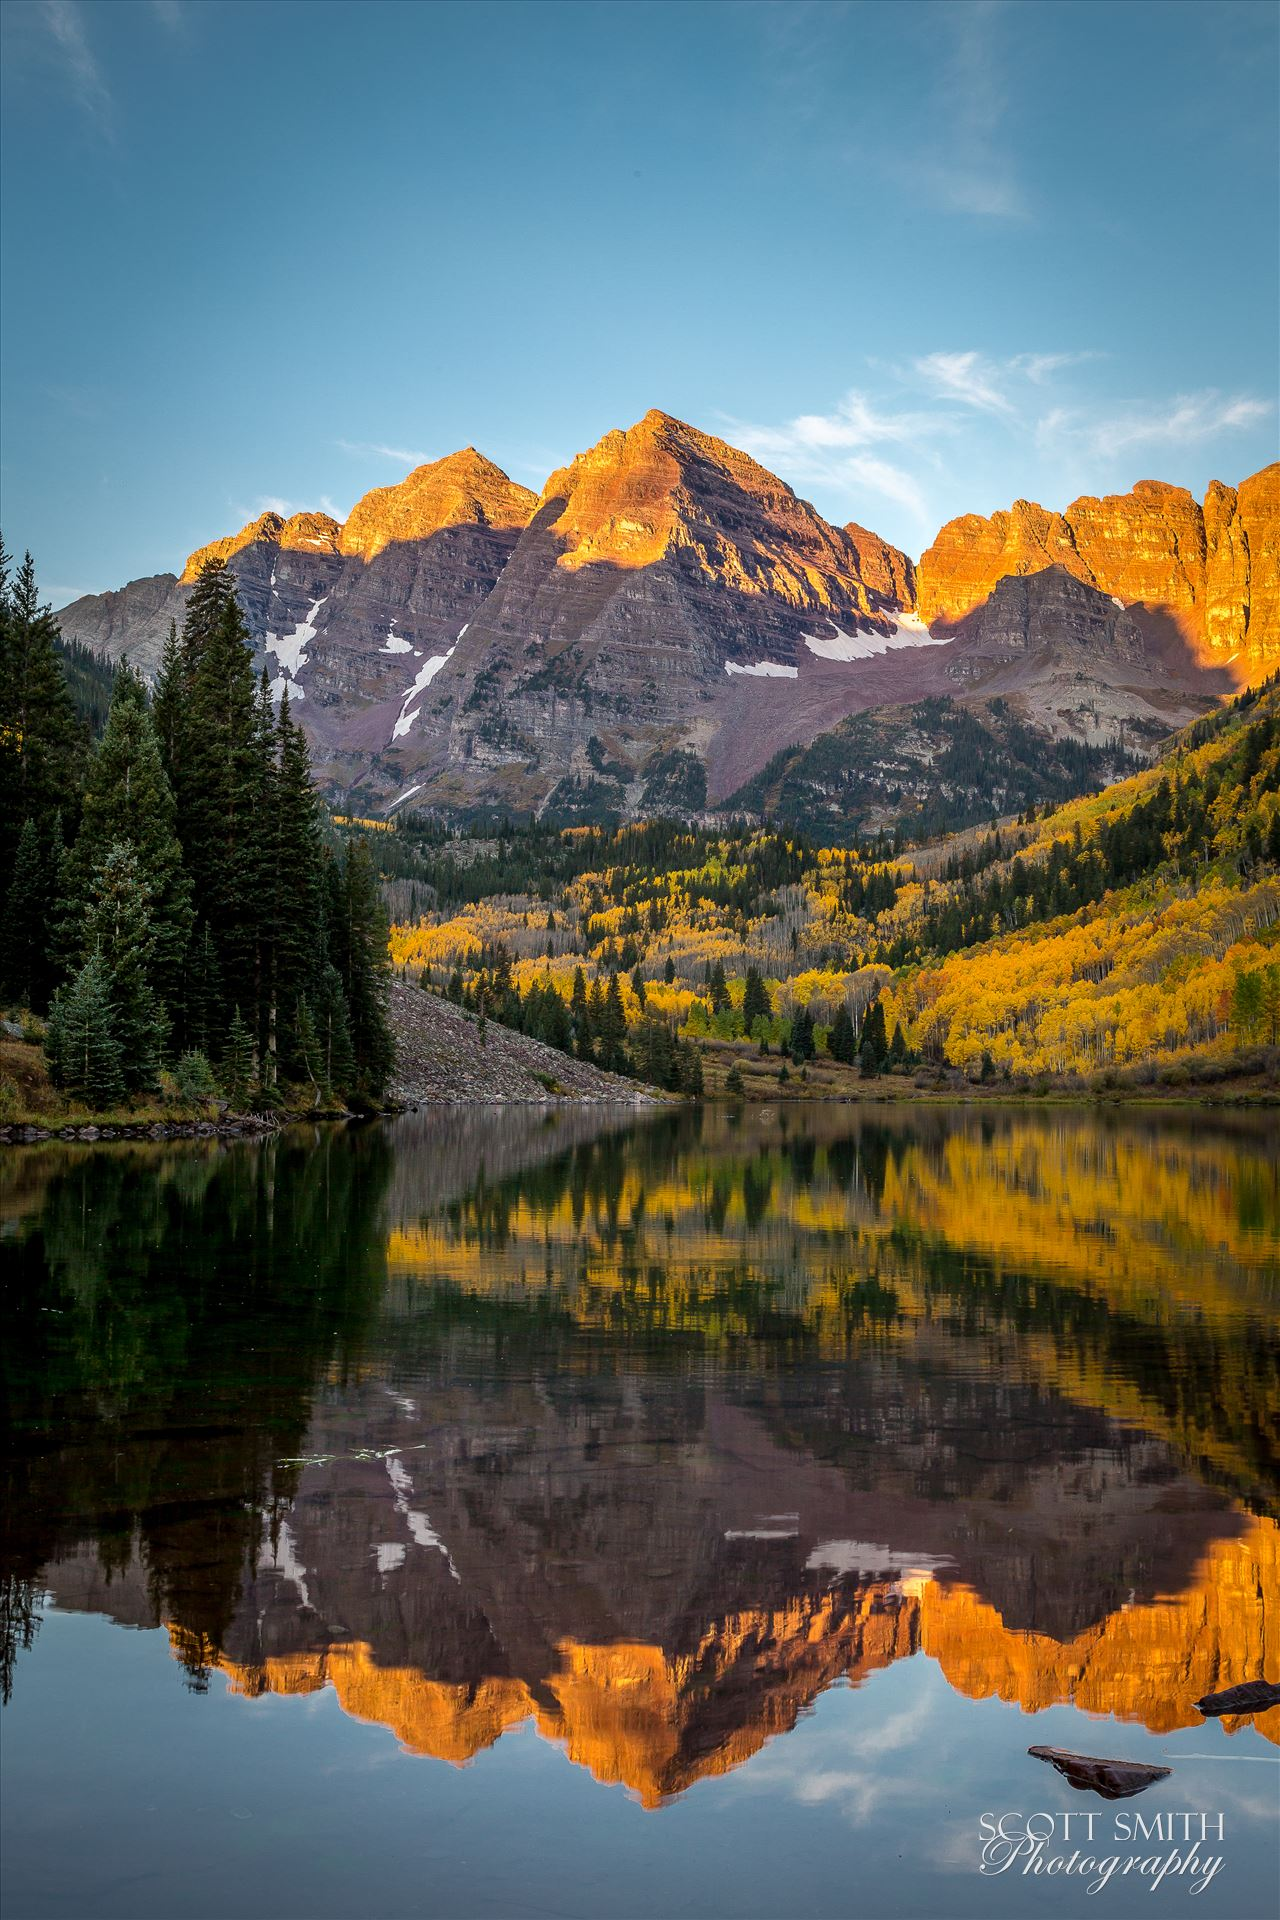 Maroon BellsThe Maroon Bells reflected in Maroon Lake. Taken September, 2014.